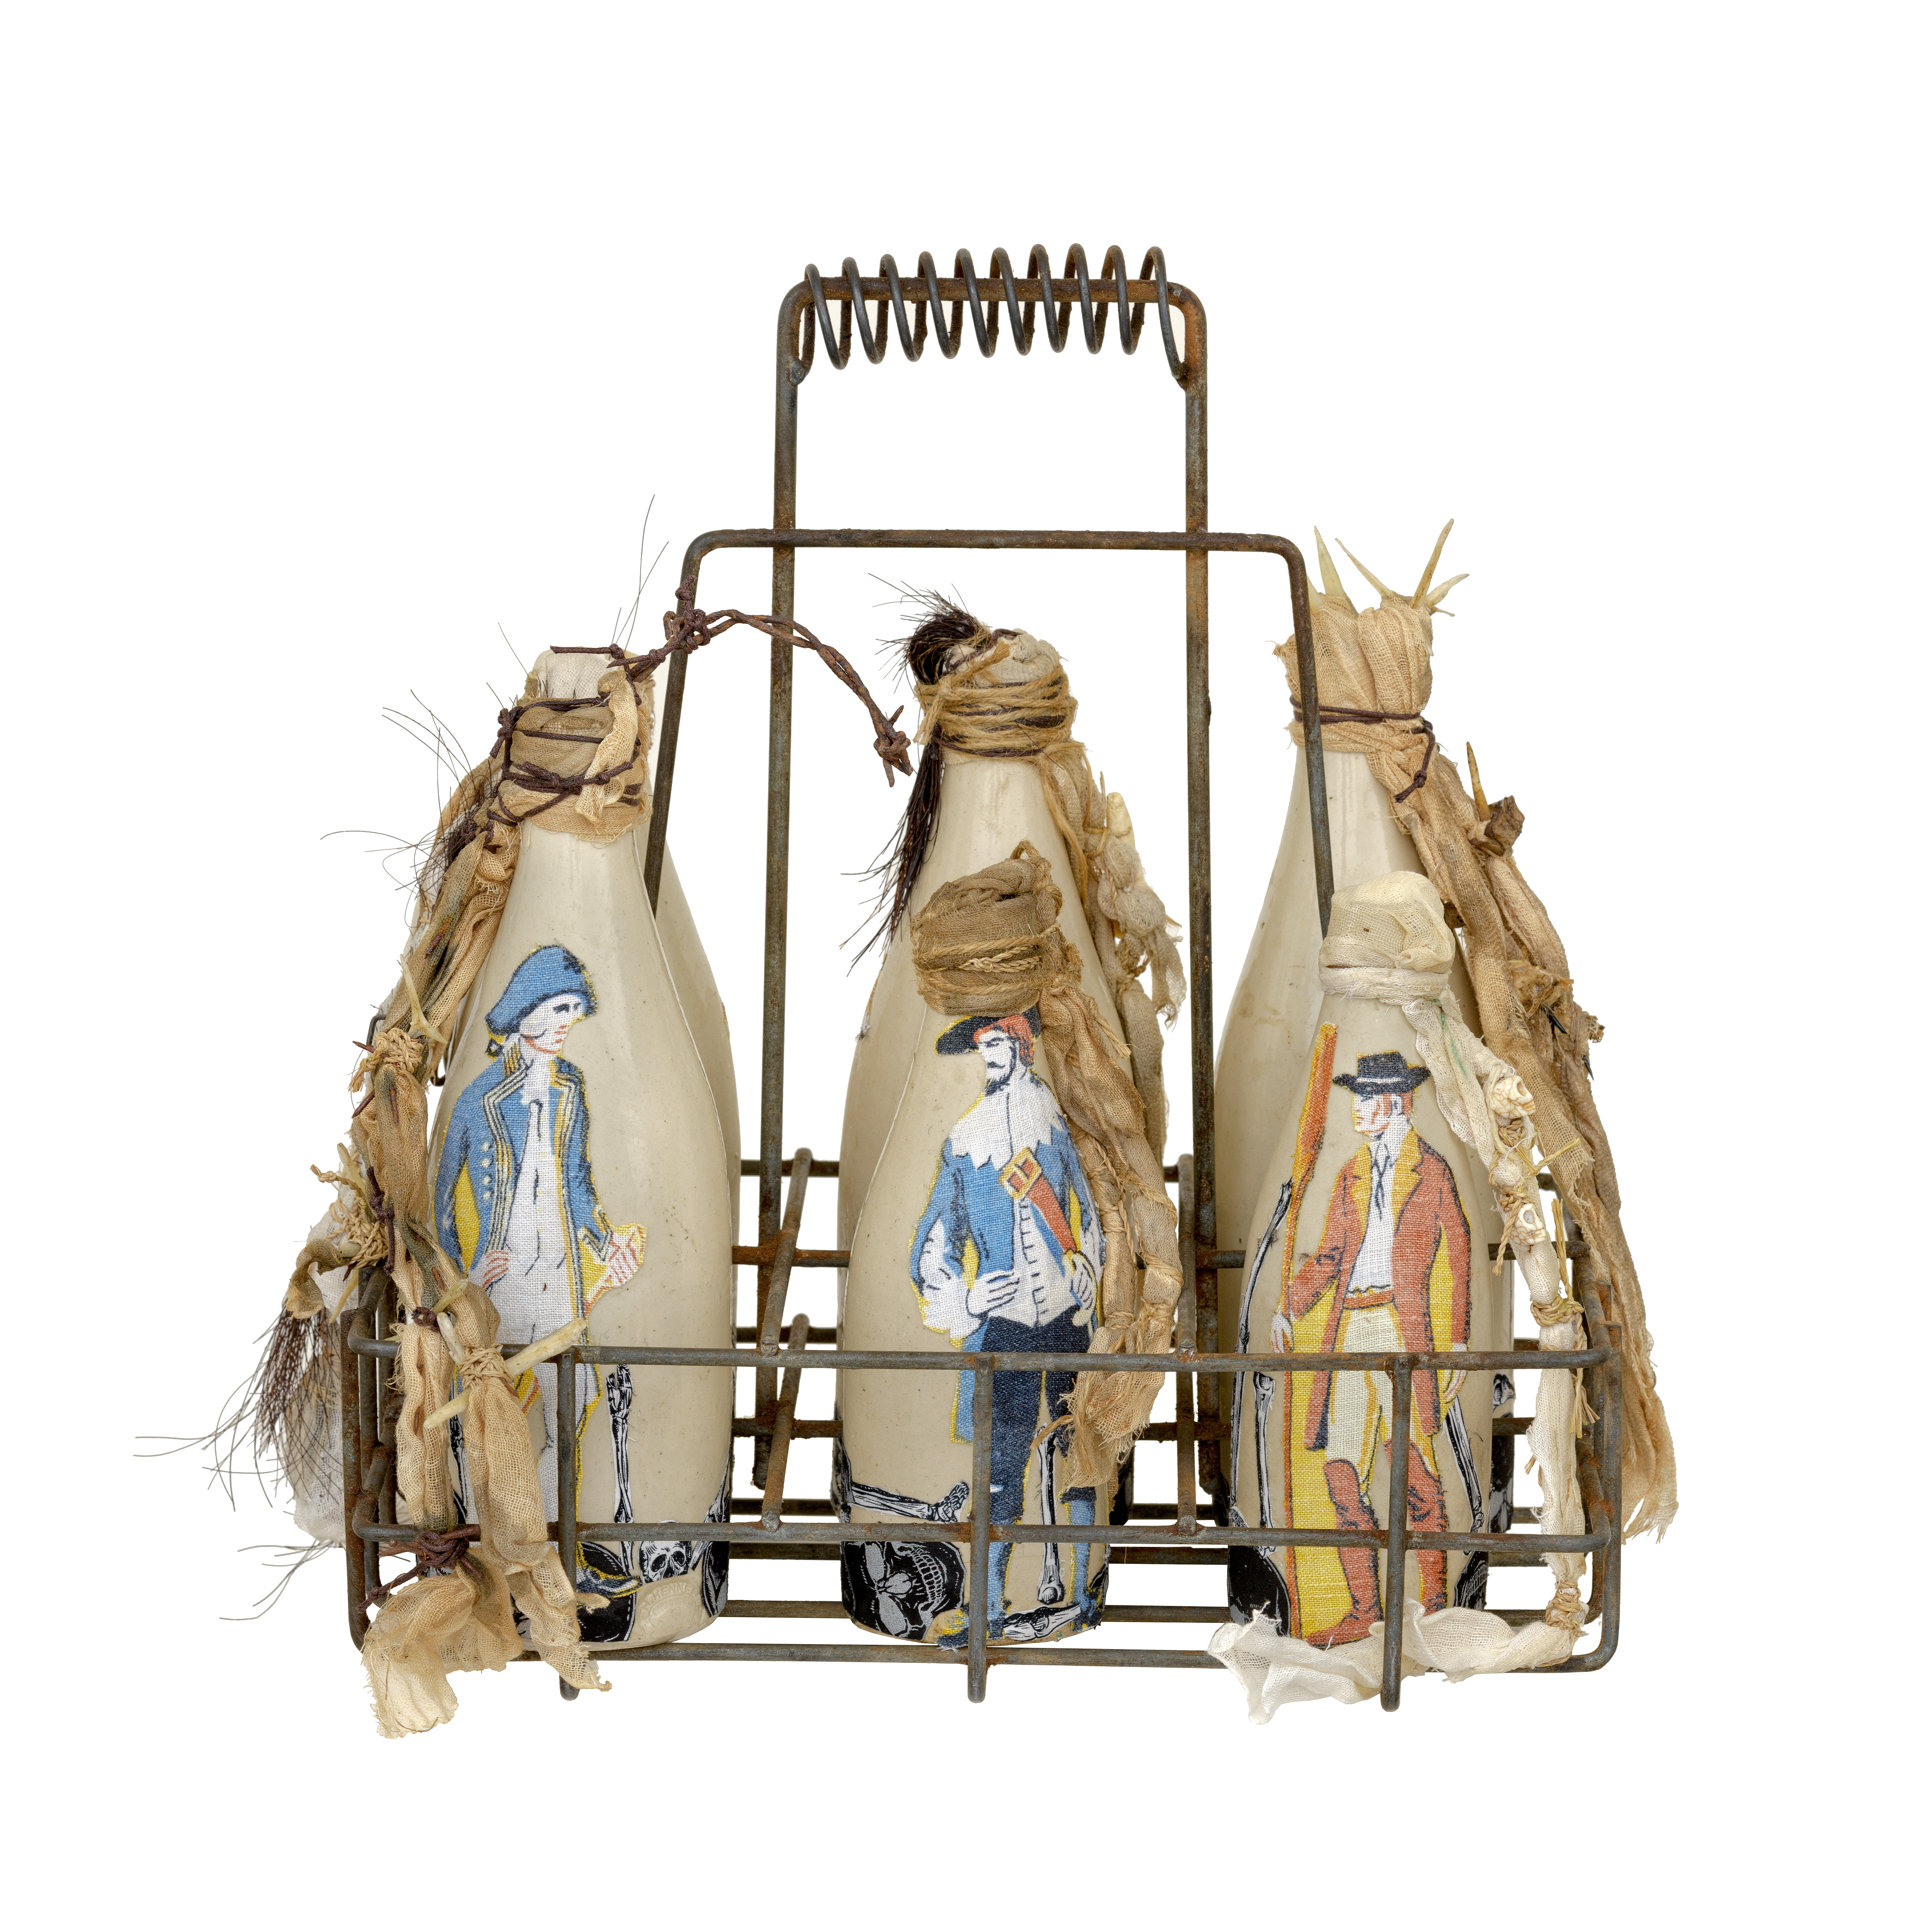 Bottles with painted-on images of men in British naval dress, in a rusty metal carrier